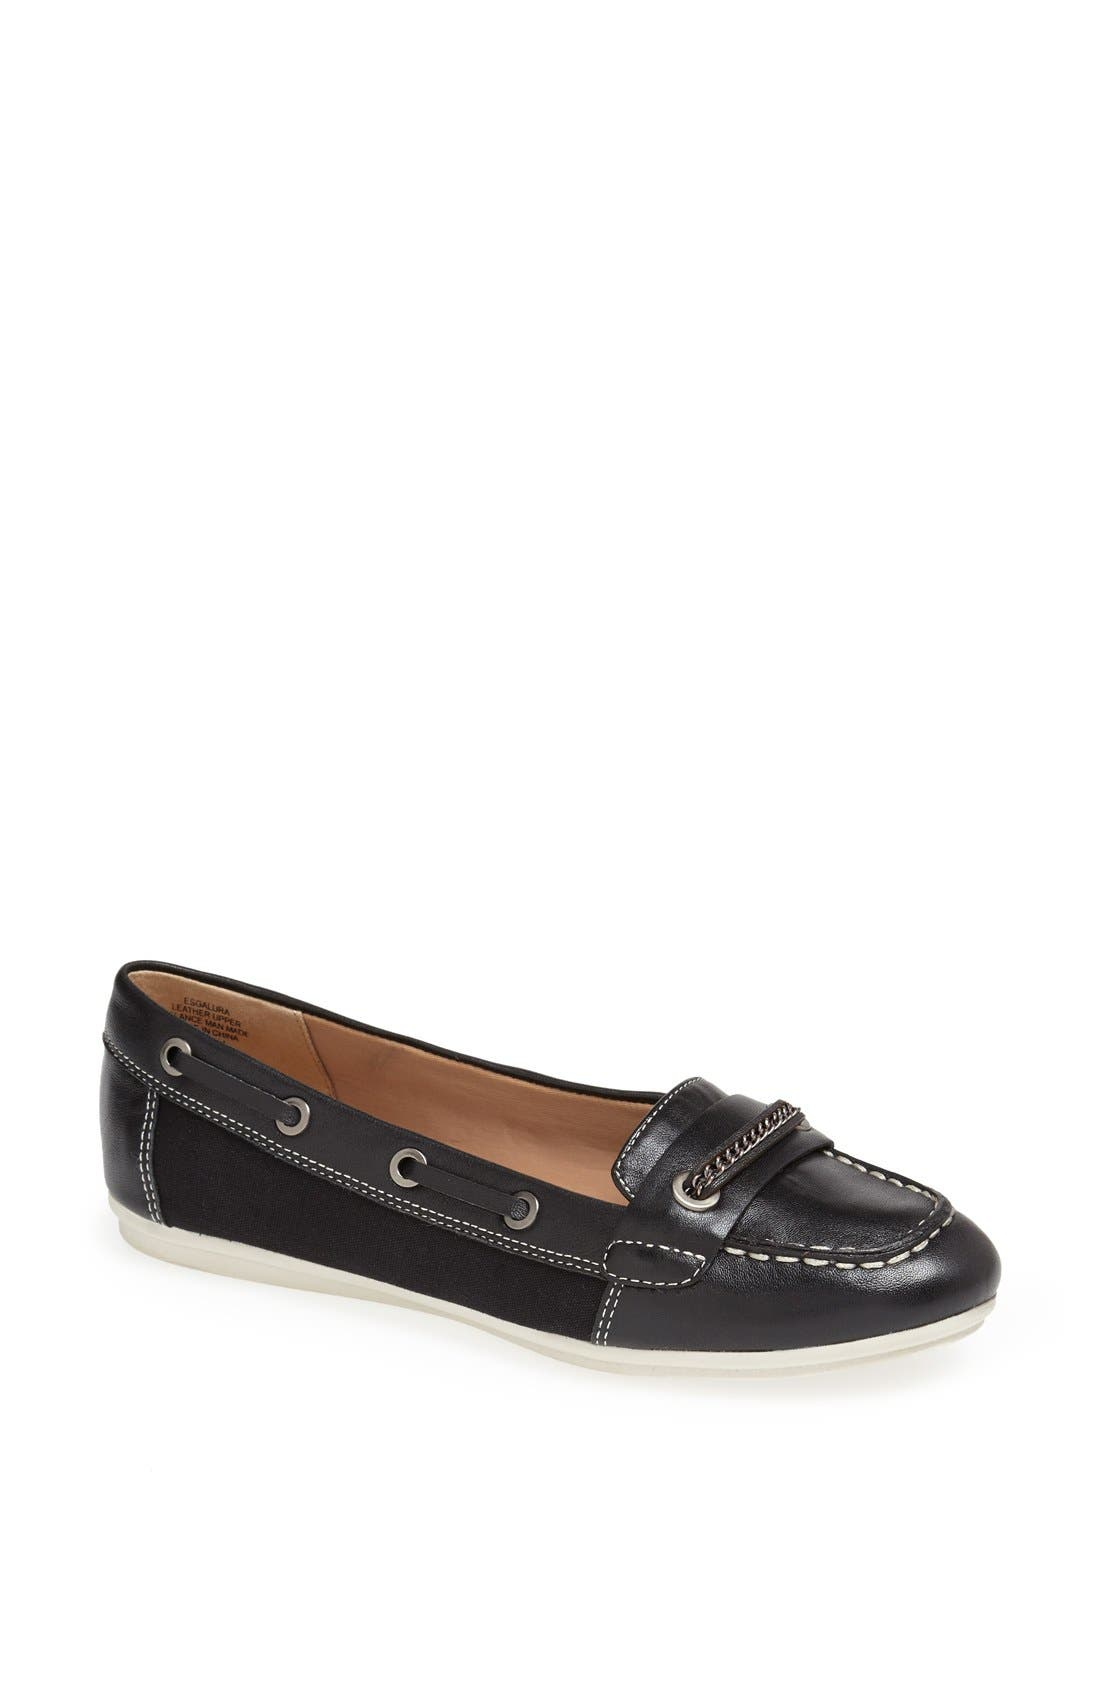 Alternate Image 1 Selected - Easy Spirit 'e360 - Galura' Loafer (Women)